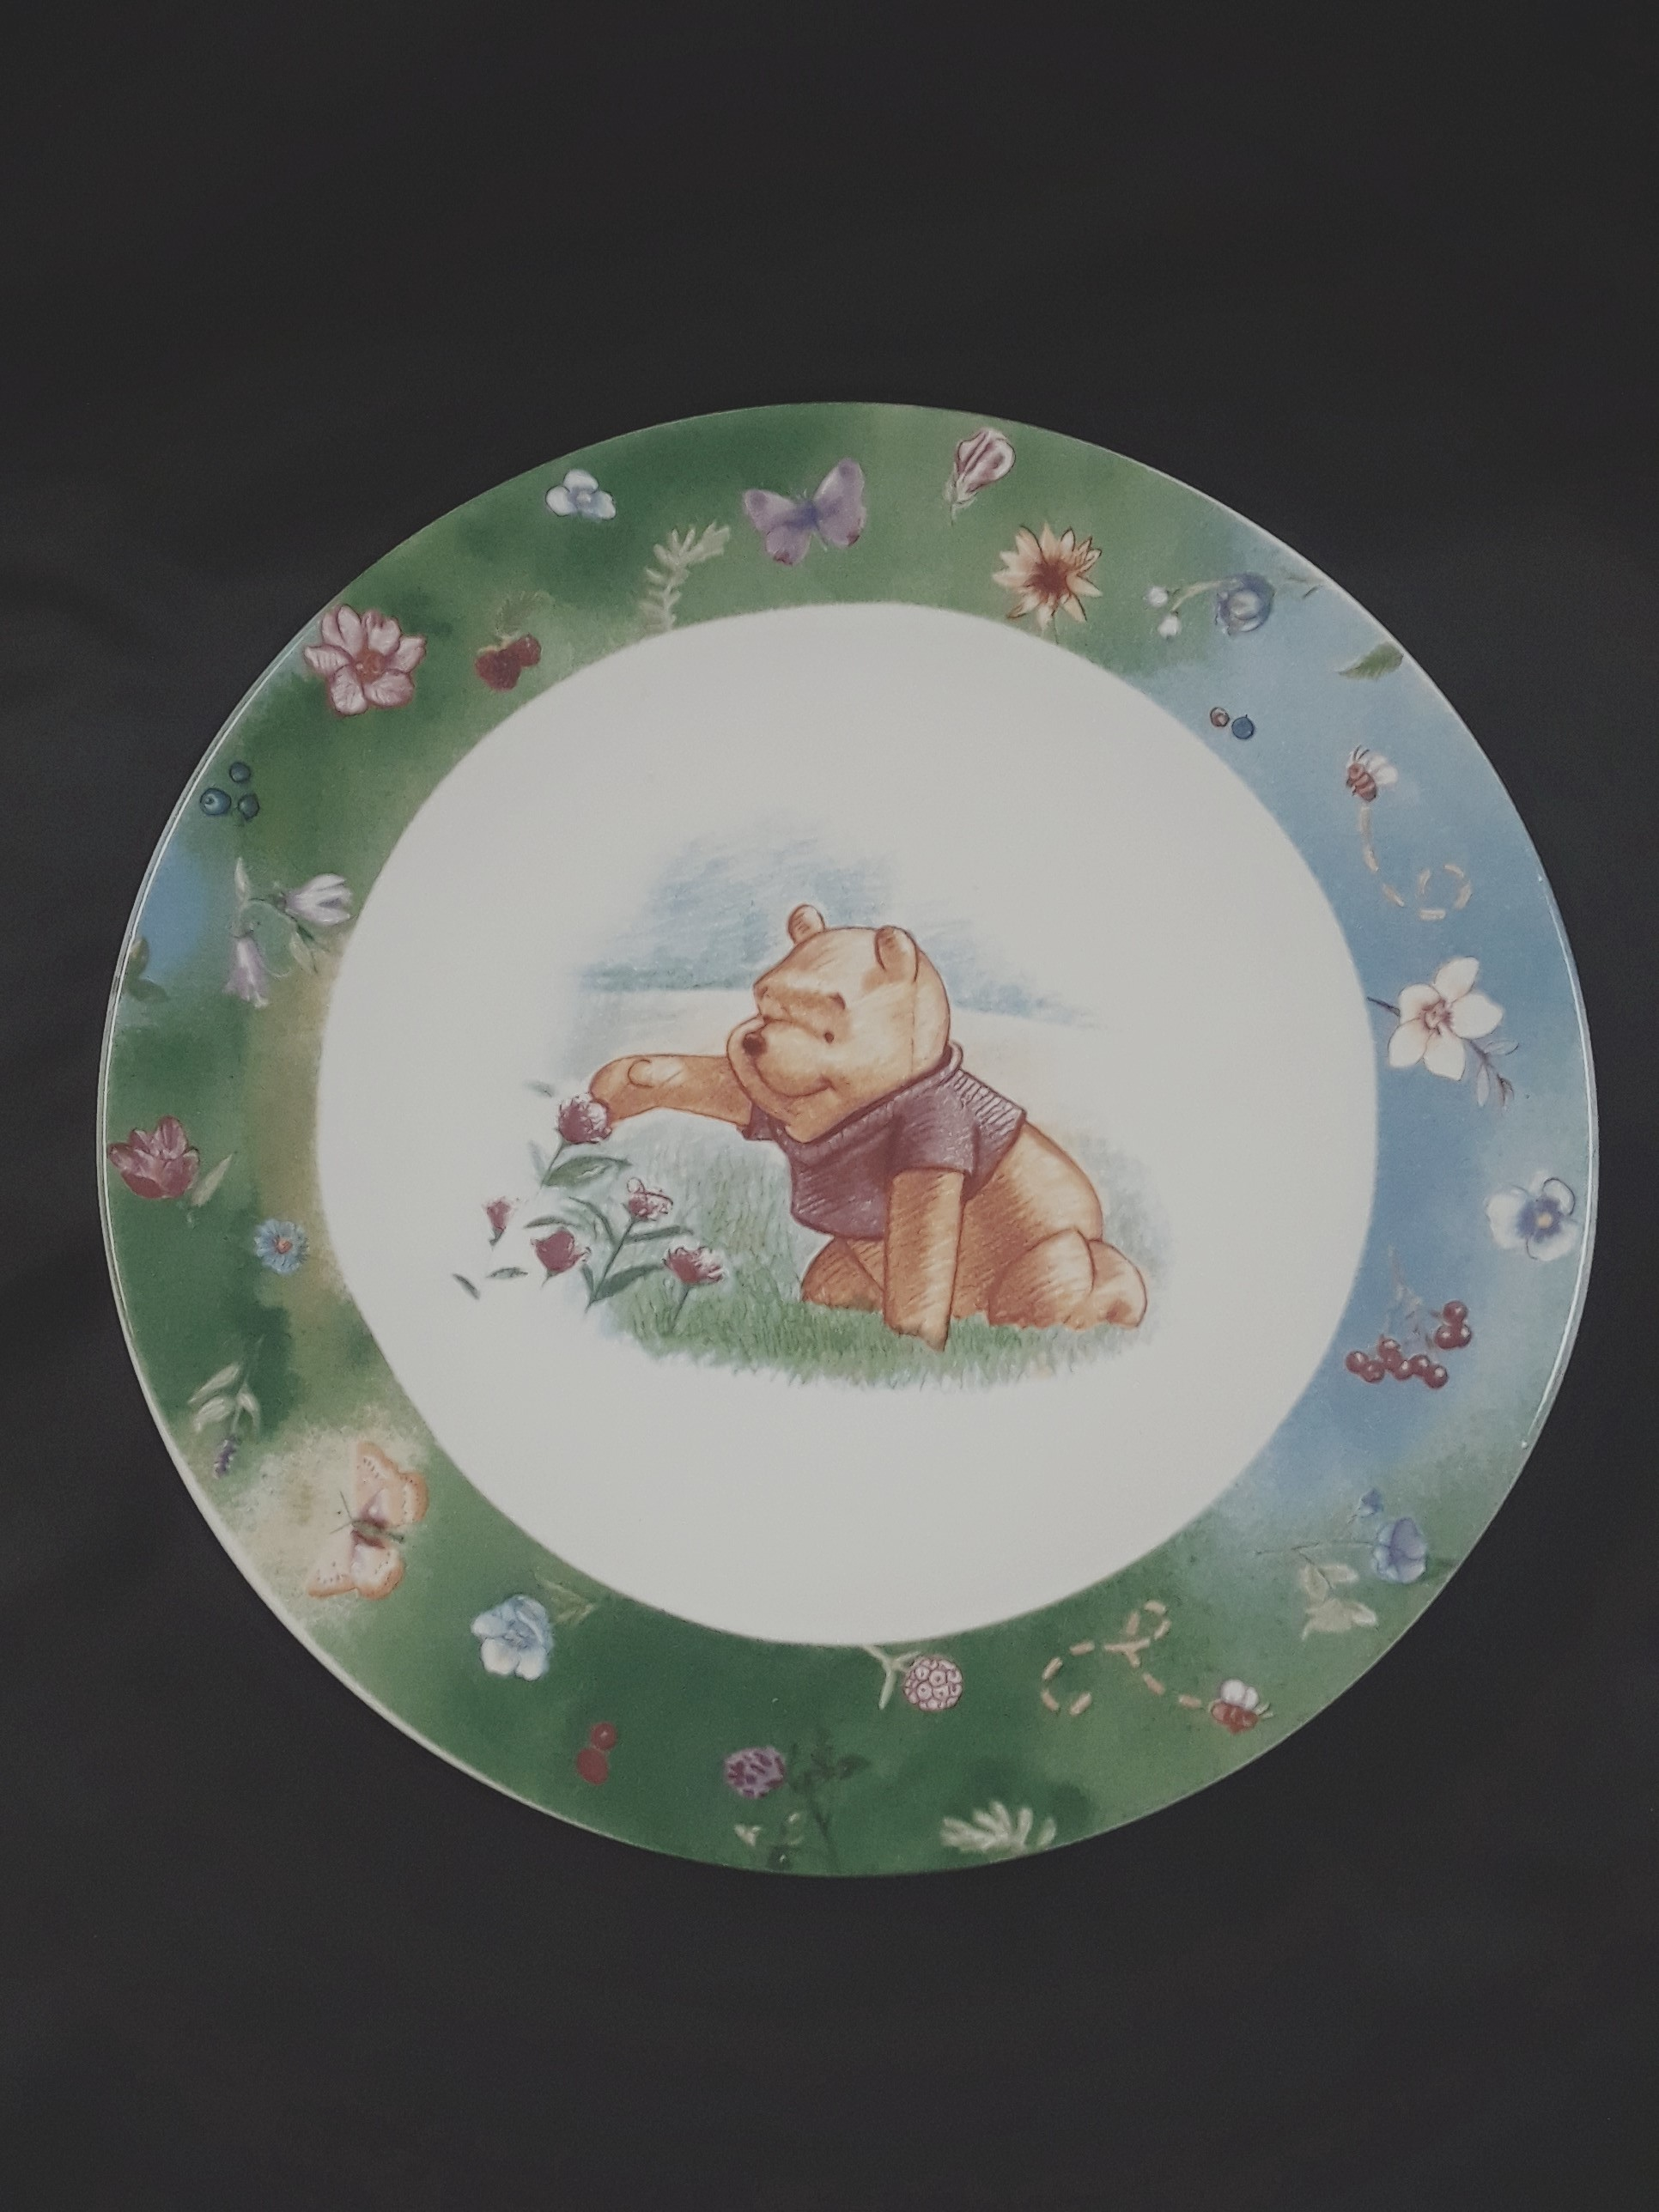 COLLECTIBLE WINNIE THE POOH PLATES